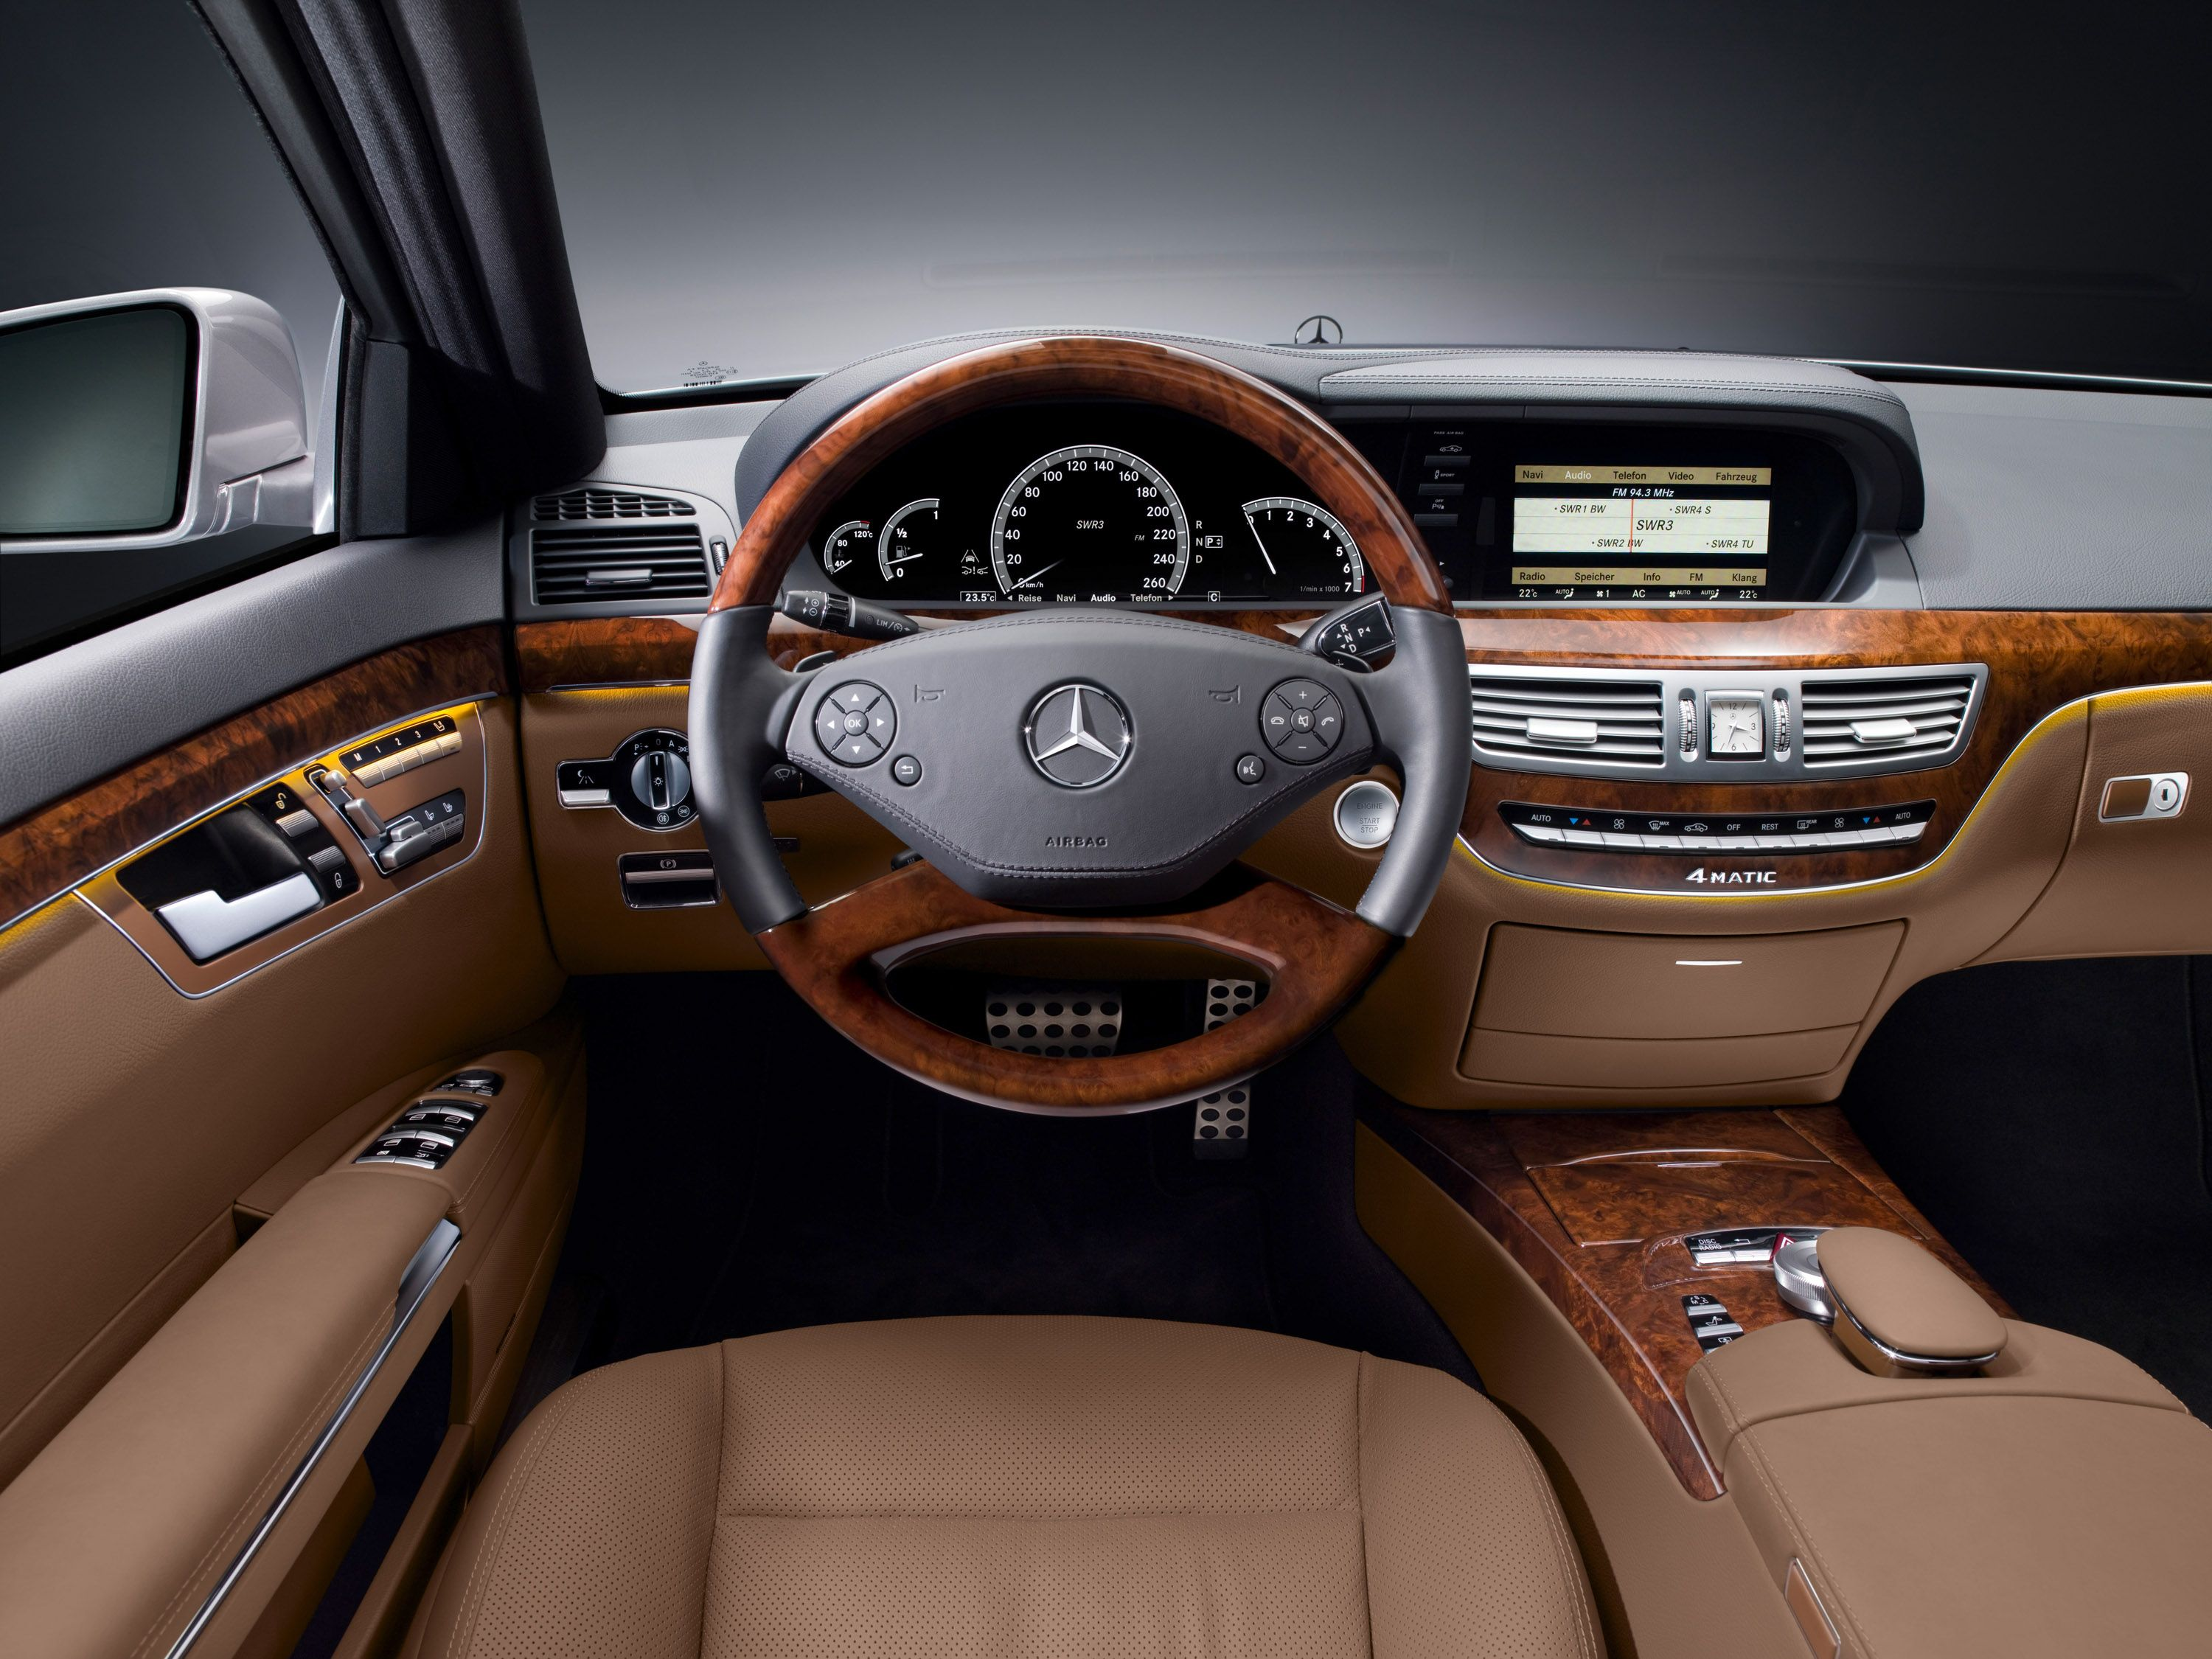 chicago mercedes presents a black youtube cars benz watch awd direct